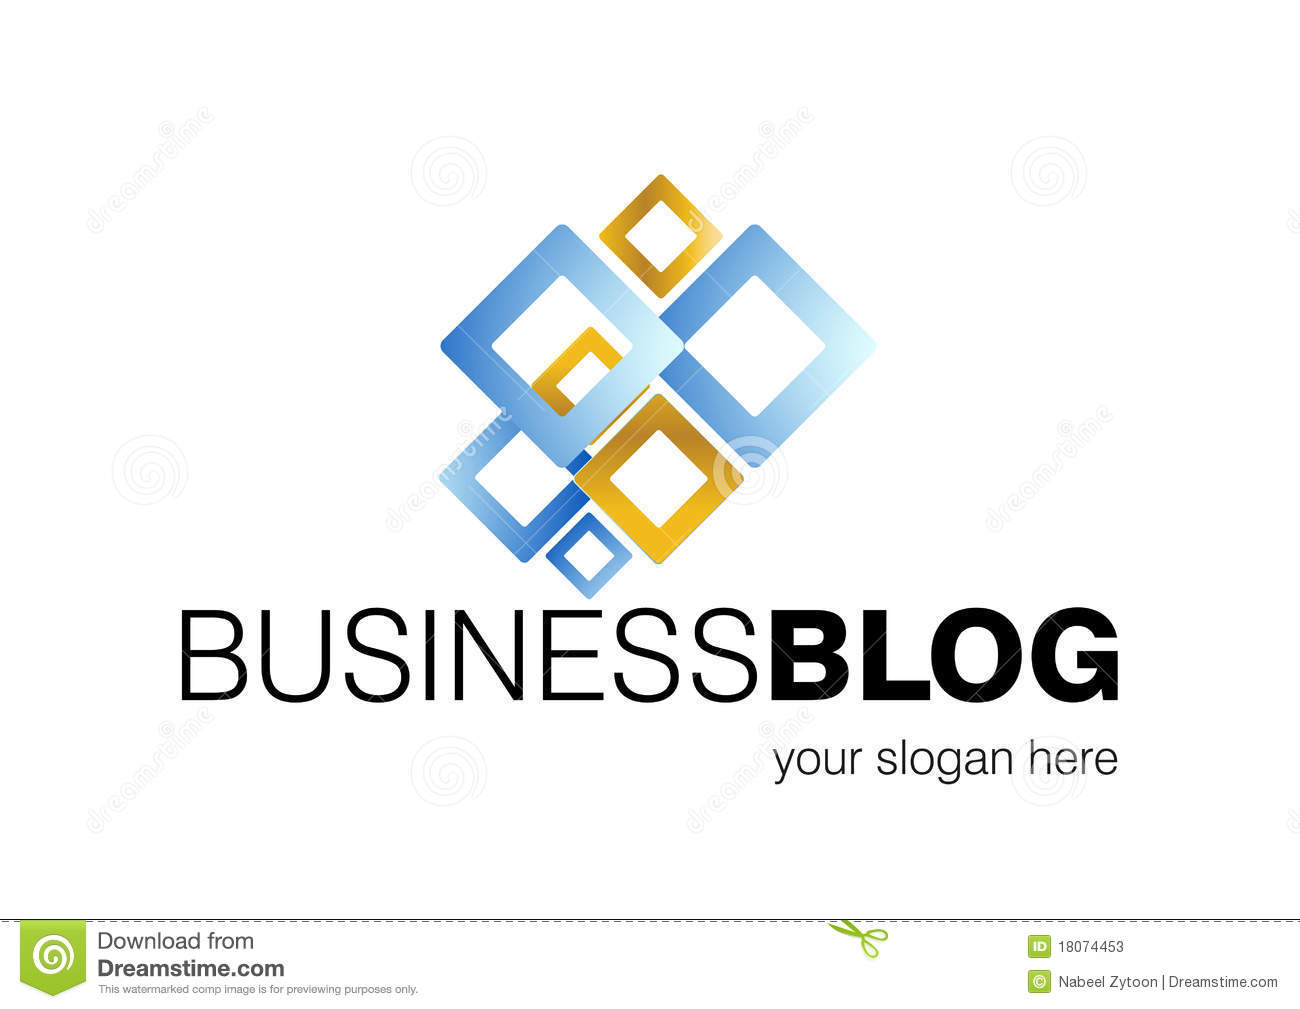 Business blog logo design stock vector illustration of Business logo design company